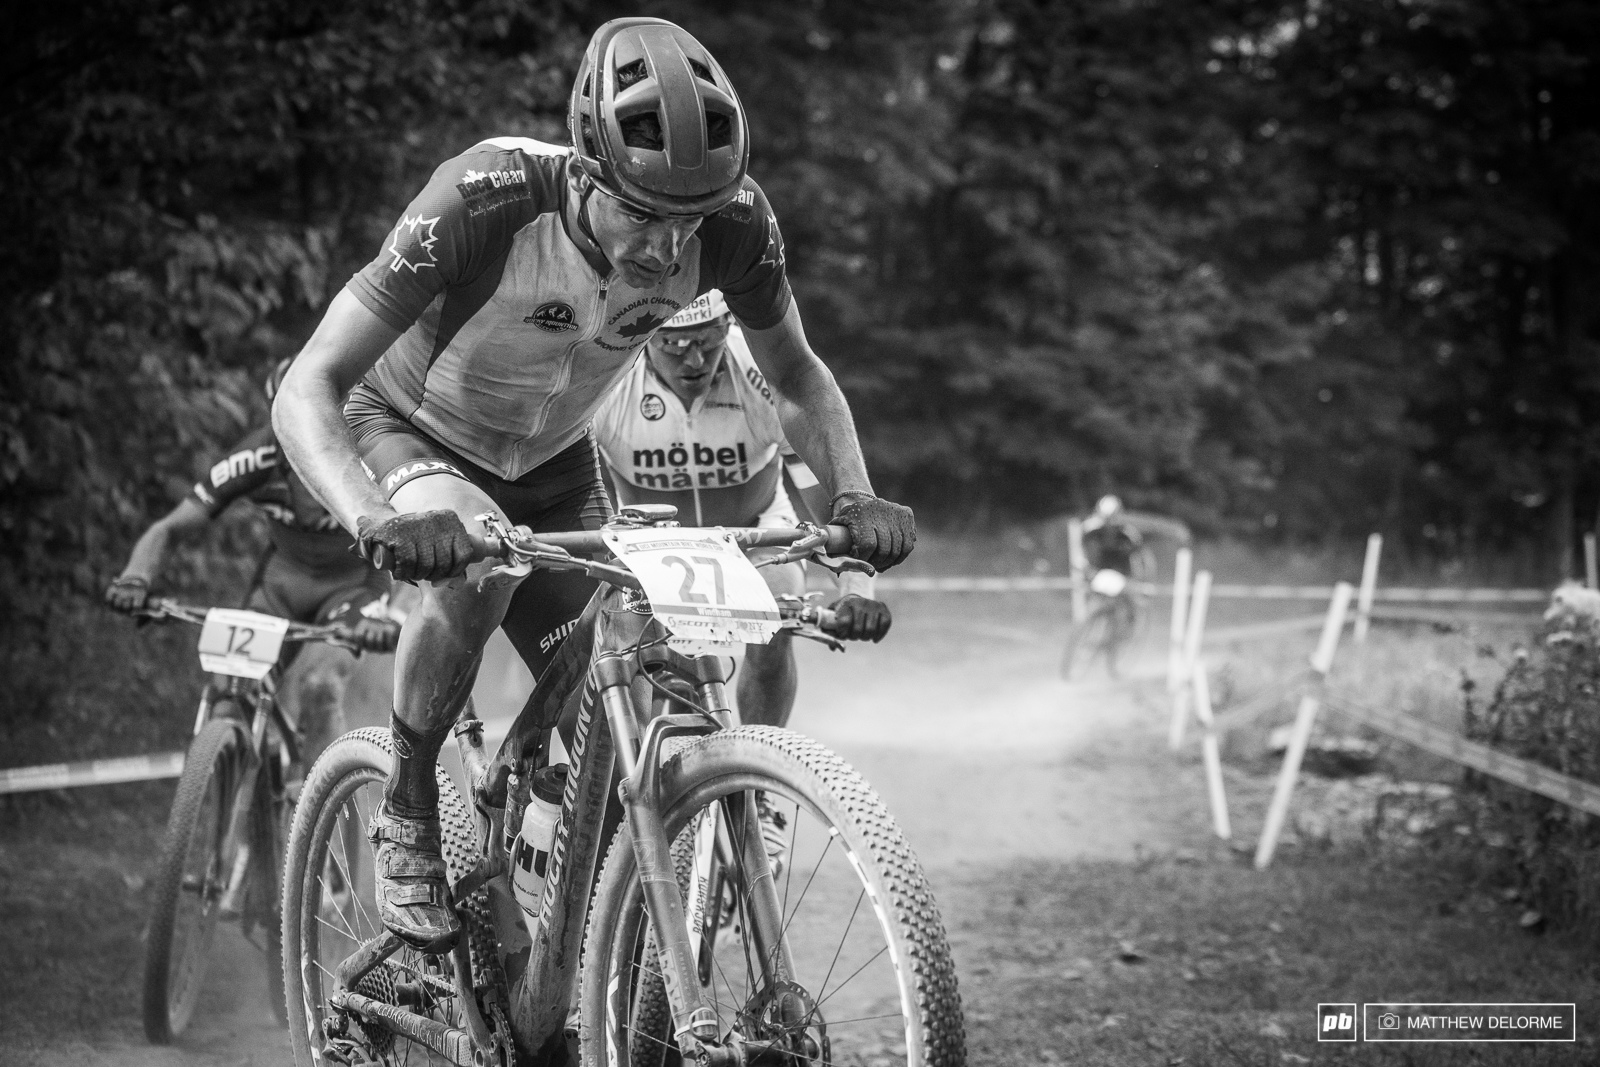 Canadian Raphael Gange rode to an impressive sixth place.